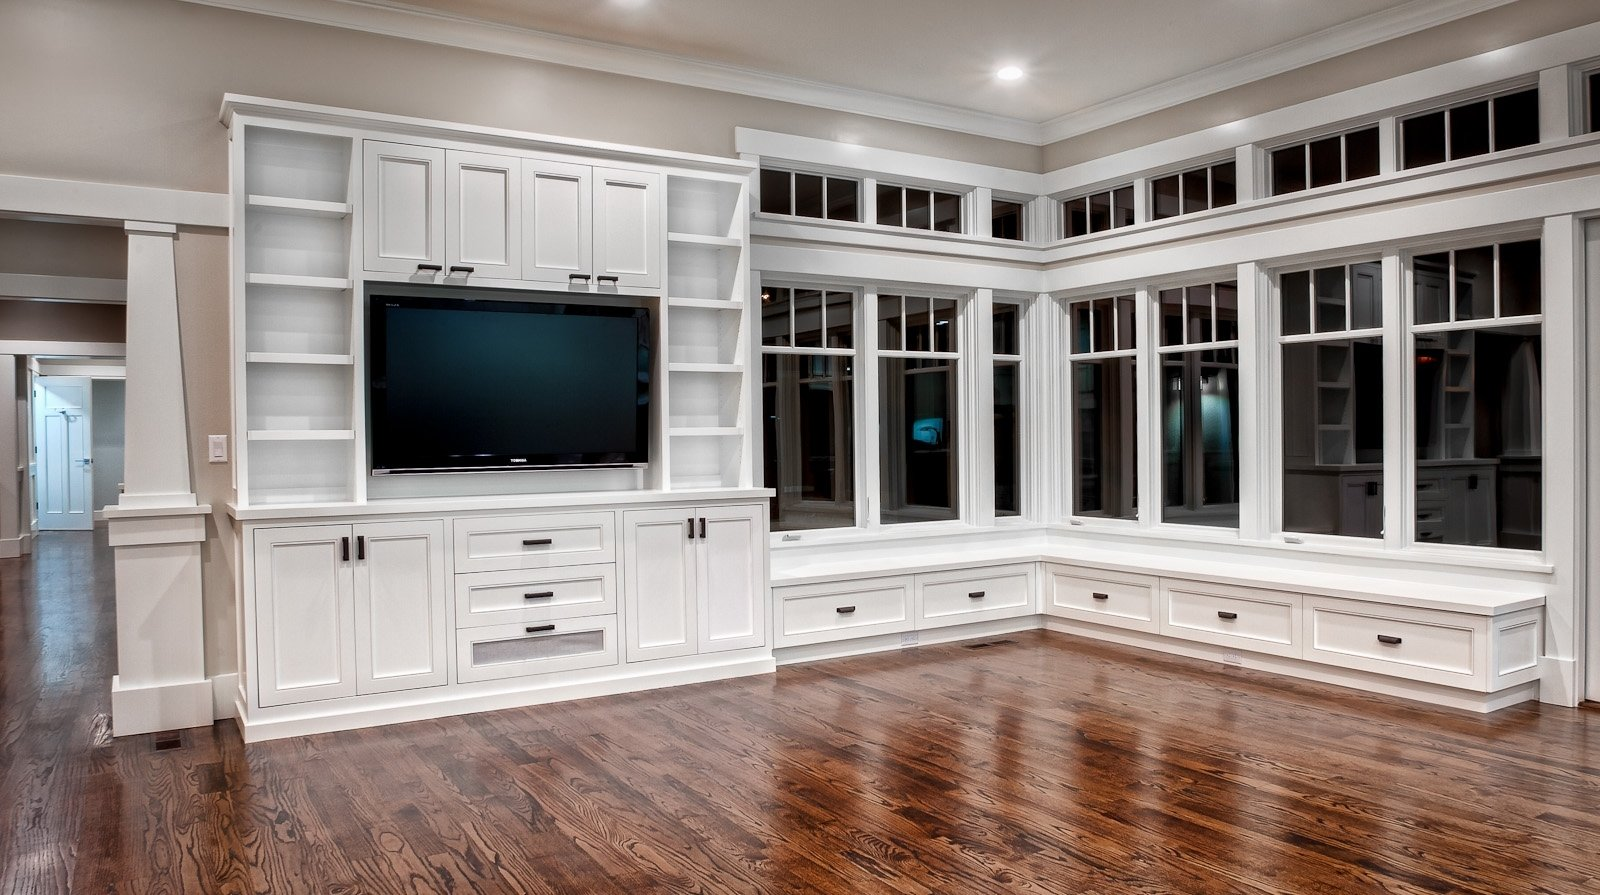 10 Awesome Built In Entertainment Center Ideas traditional entertainment center custom cabinets houston cabinet 2020